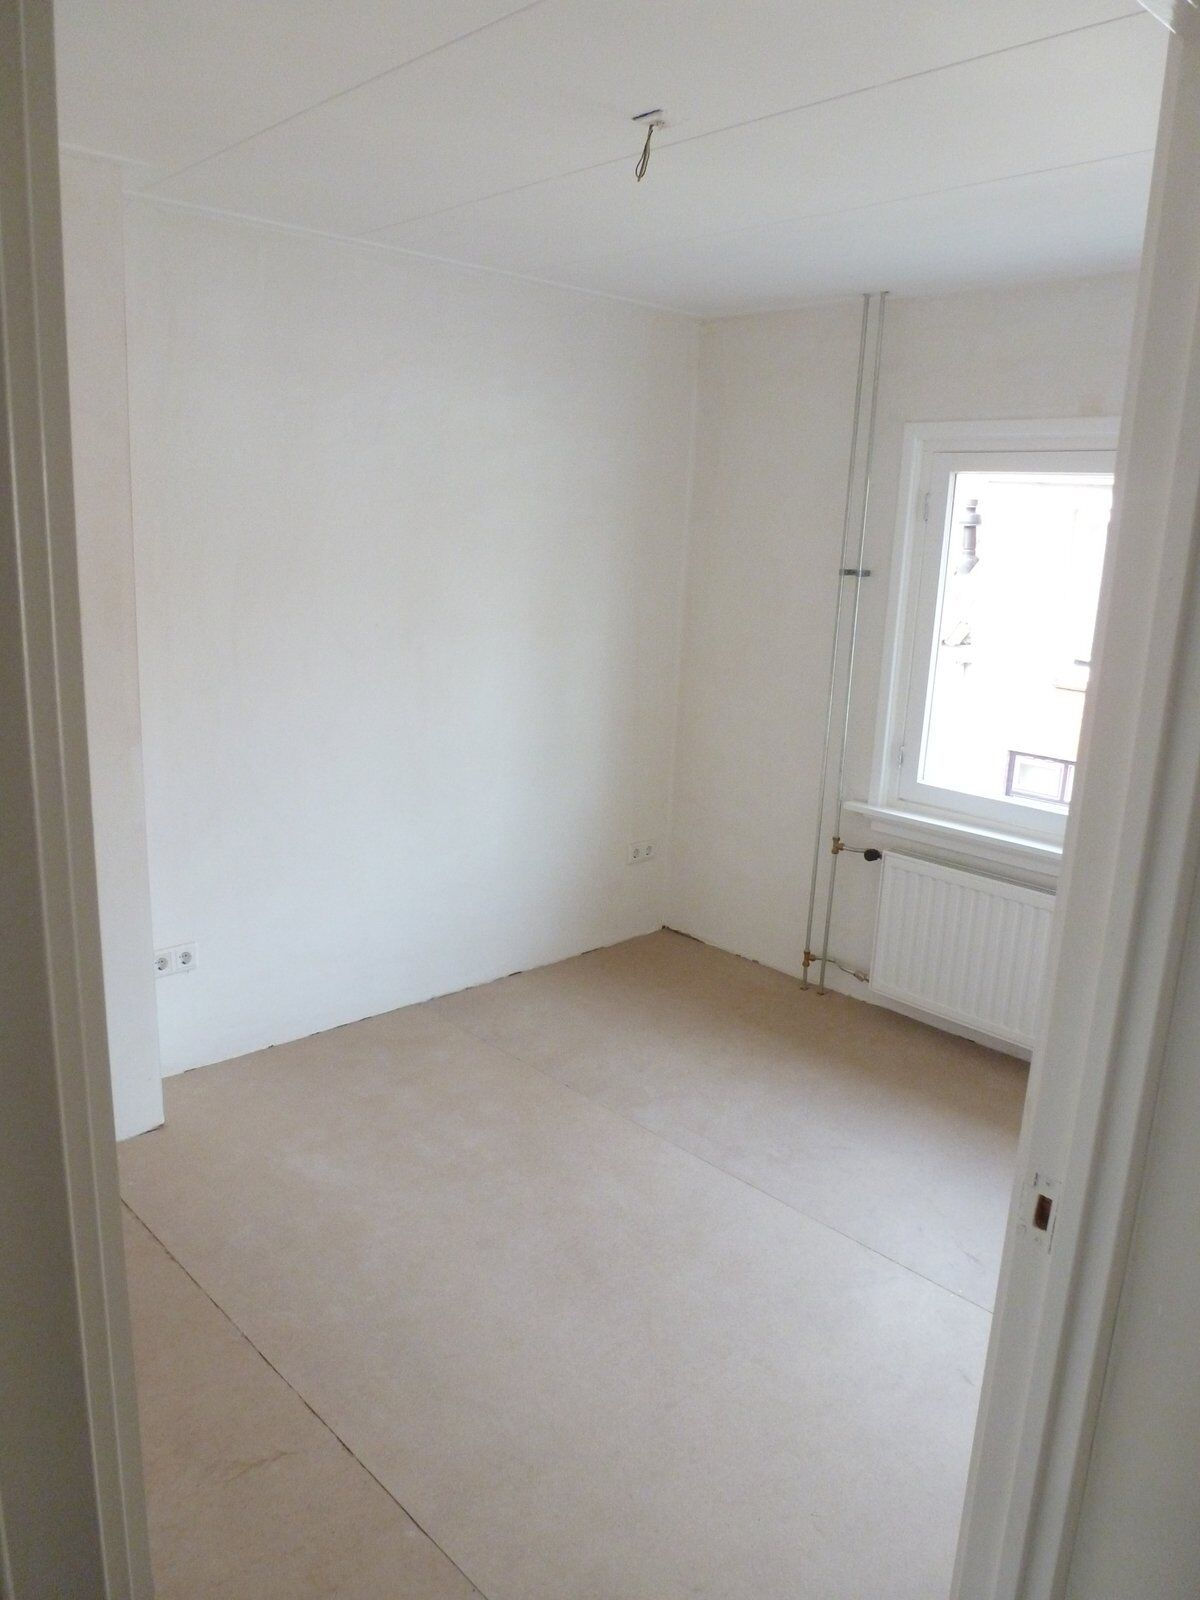 35741-visserstraat_12-steenbergen_nb-1454773069